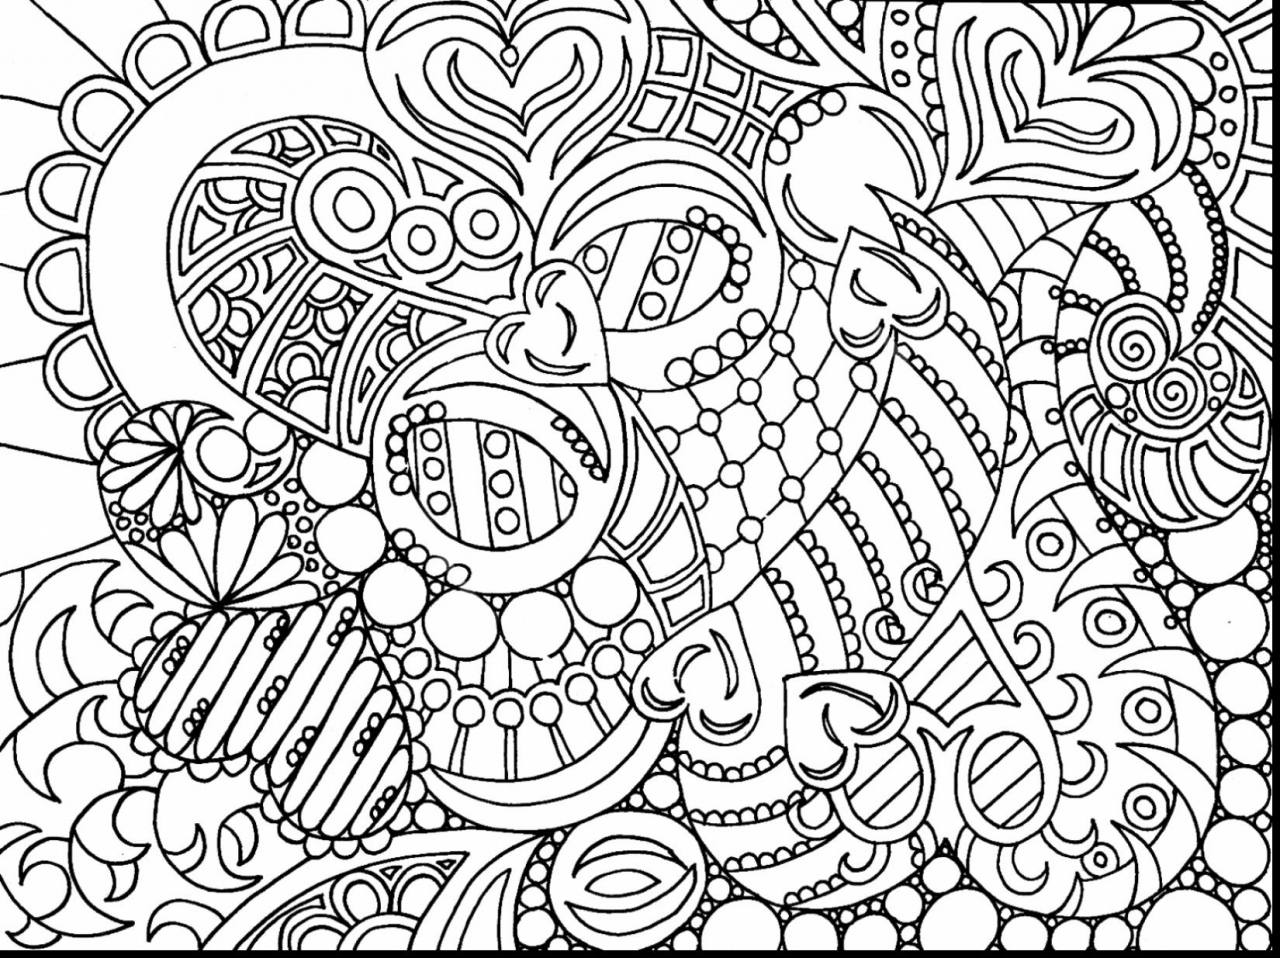 printable difficult coloring pages for adults 46271 - Printable Difficult Coloring Pages